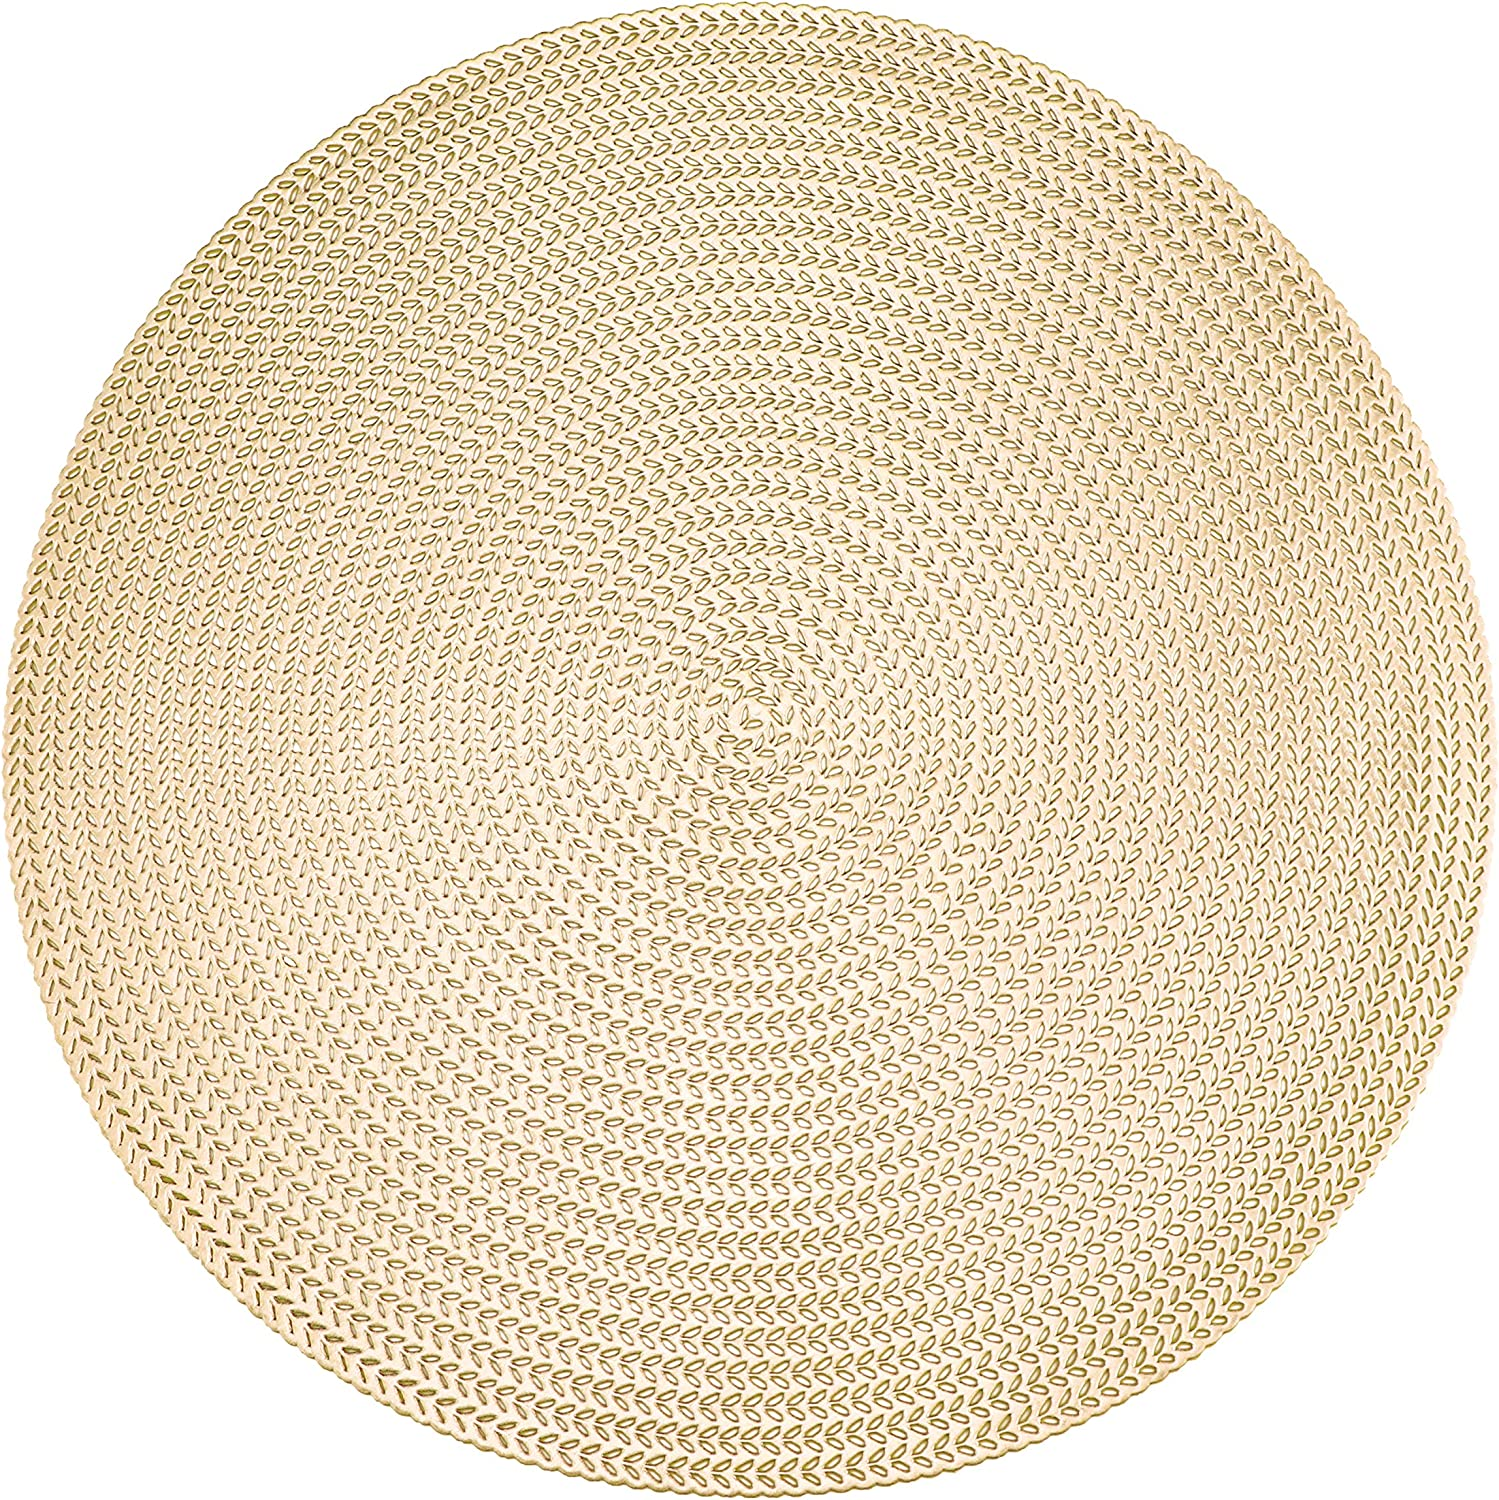 Set of 6, Gold Metallic Vinyl Round Placemats Laminated Plastic Morden Dining Table Decoration, Rye by Snowkingdom